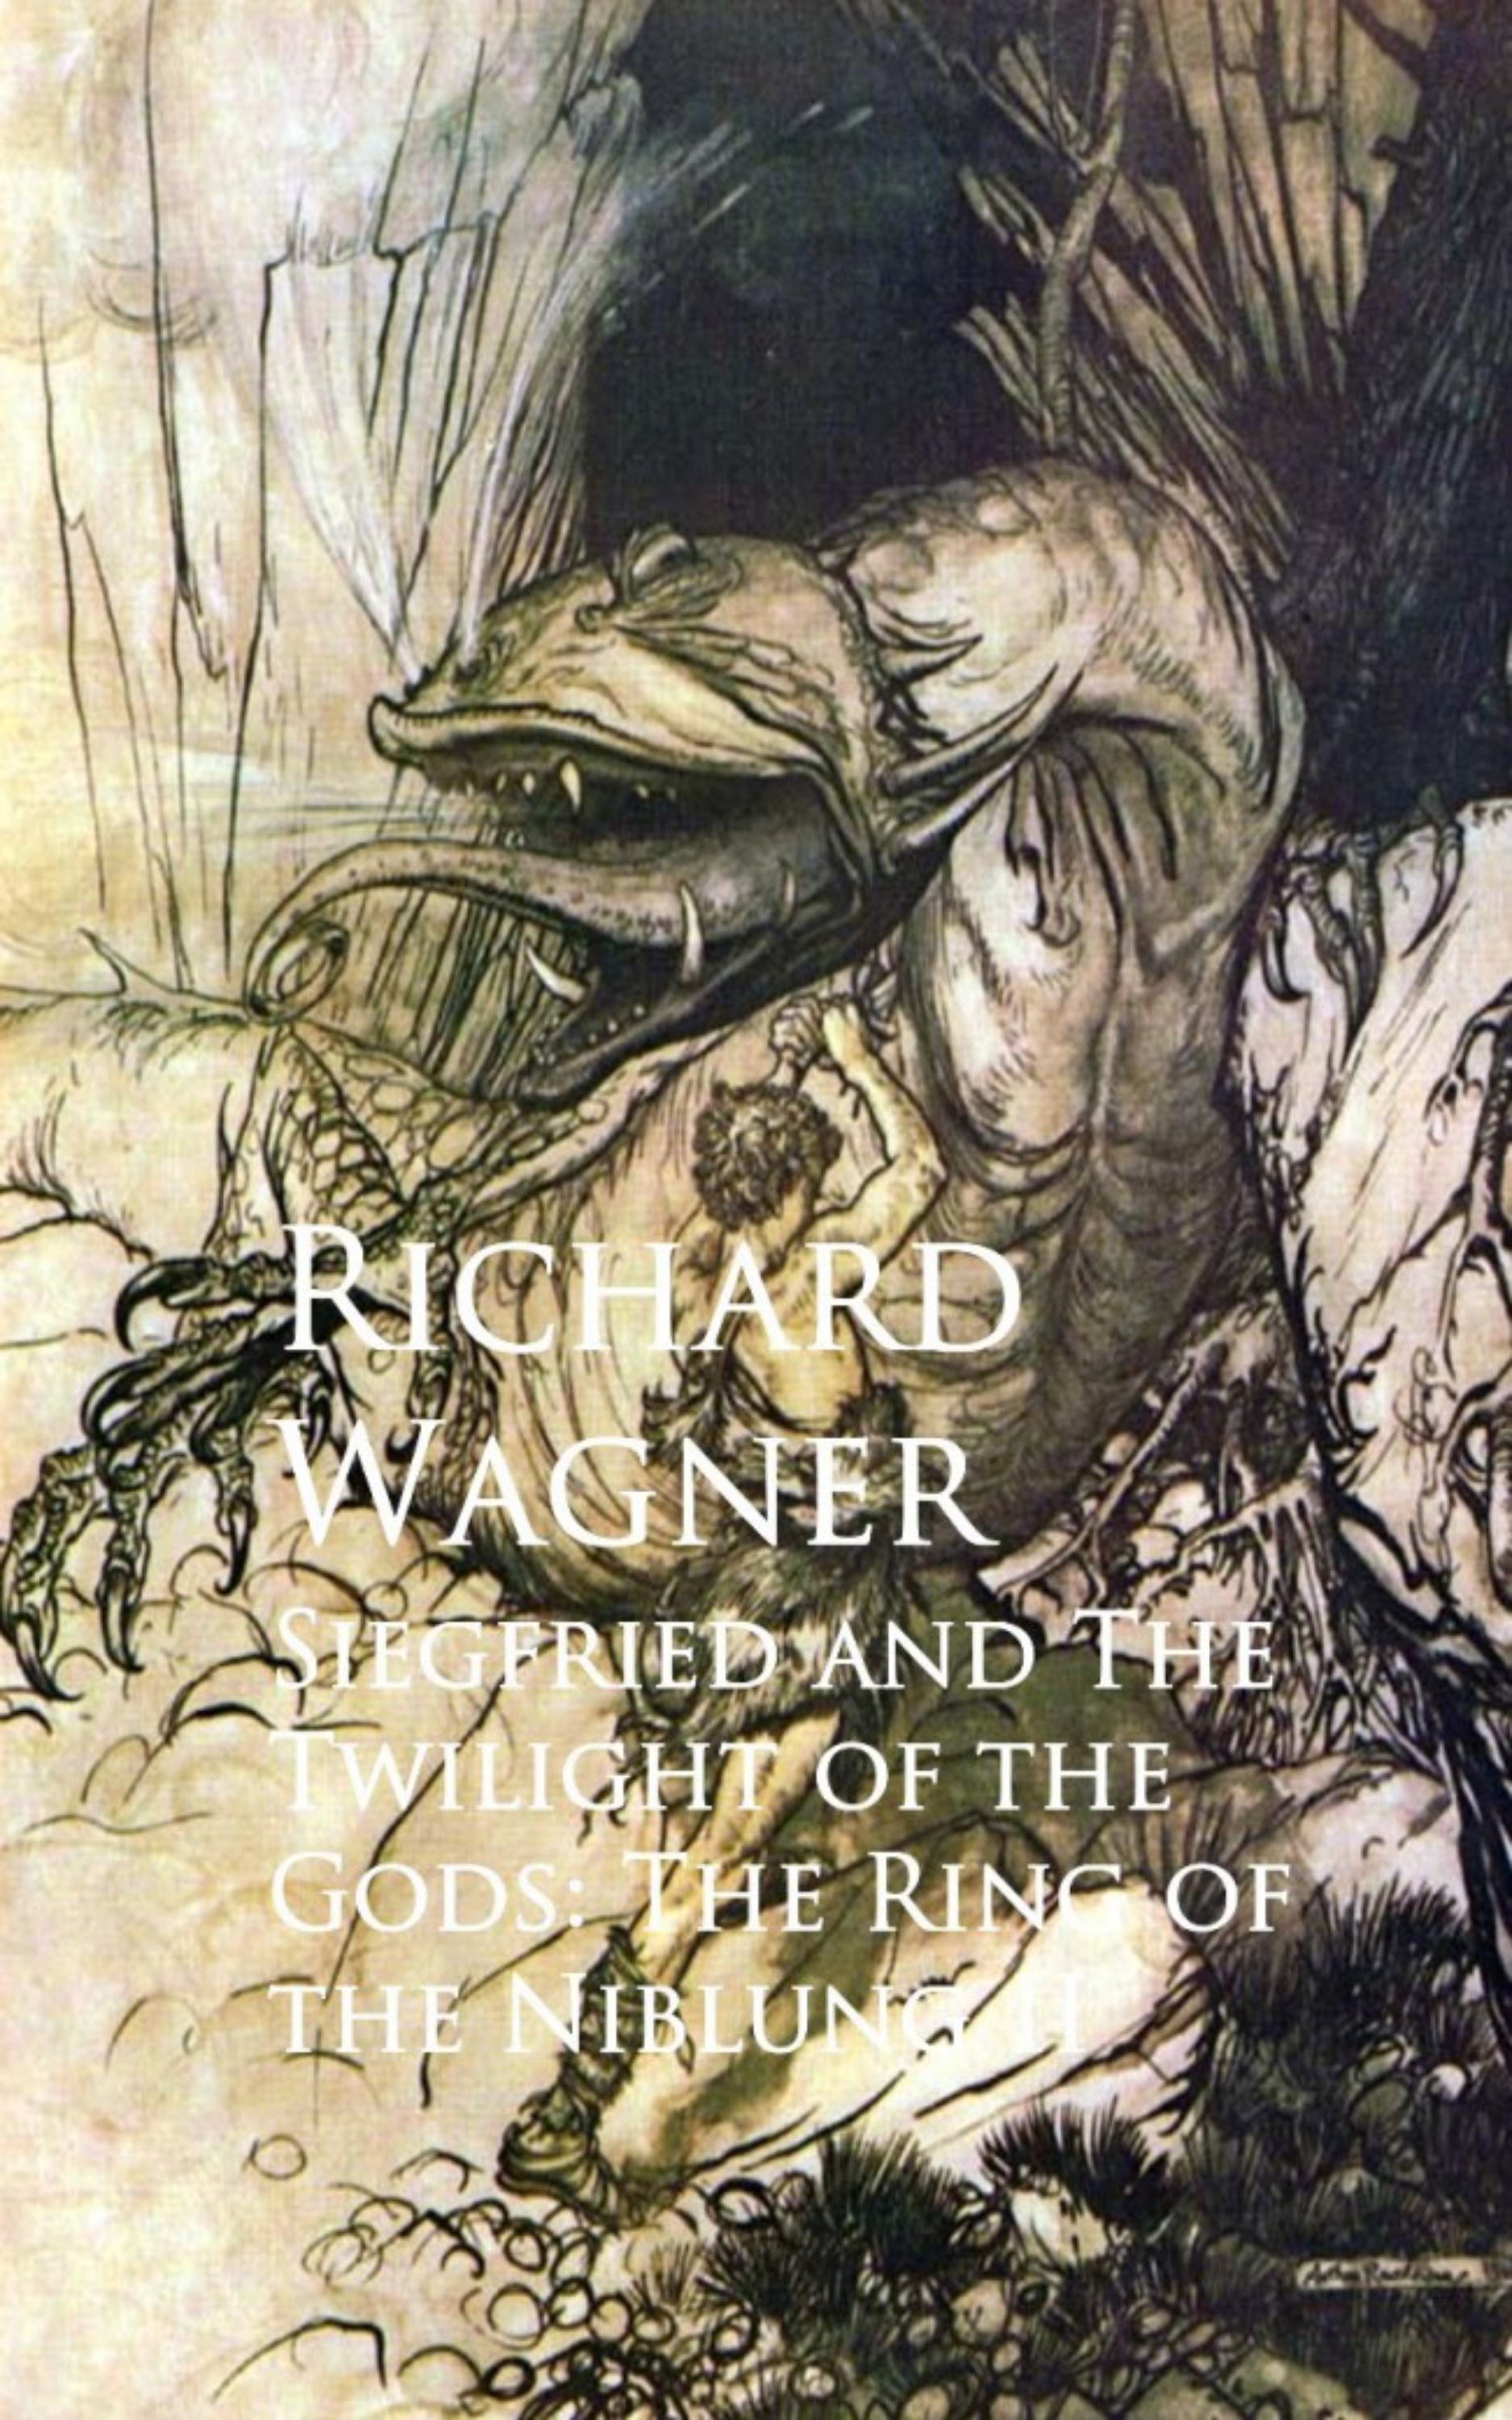 Richard Wagner Siegfried and The Twilight of the Gods: The Ring of the Niblung II richard wagner richard mansfield xml all in one desk reference for dummies